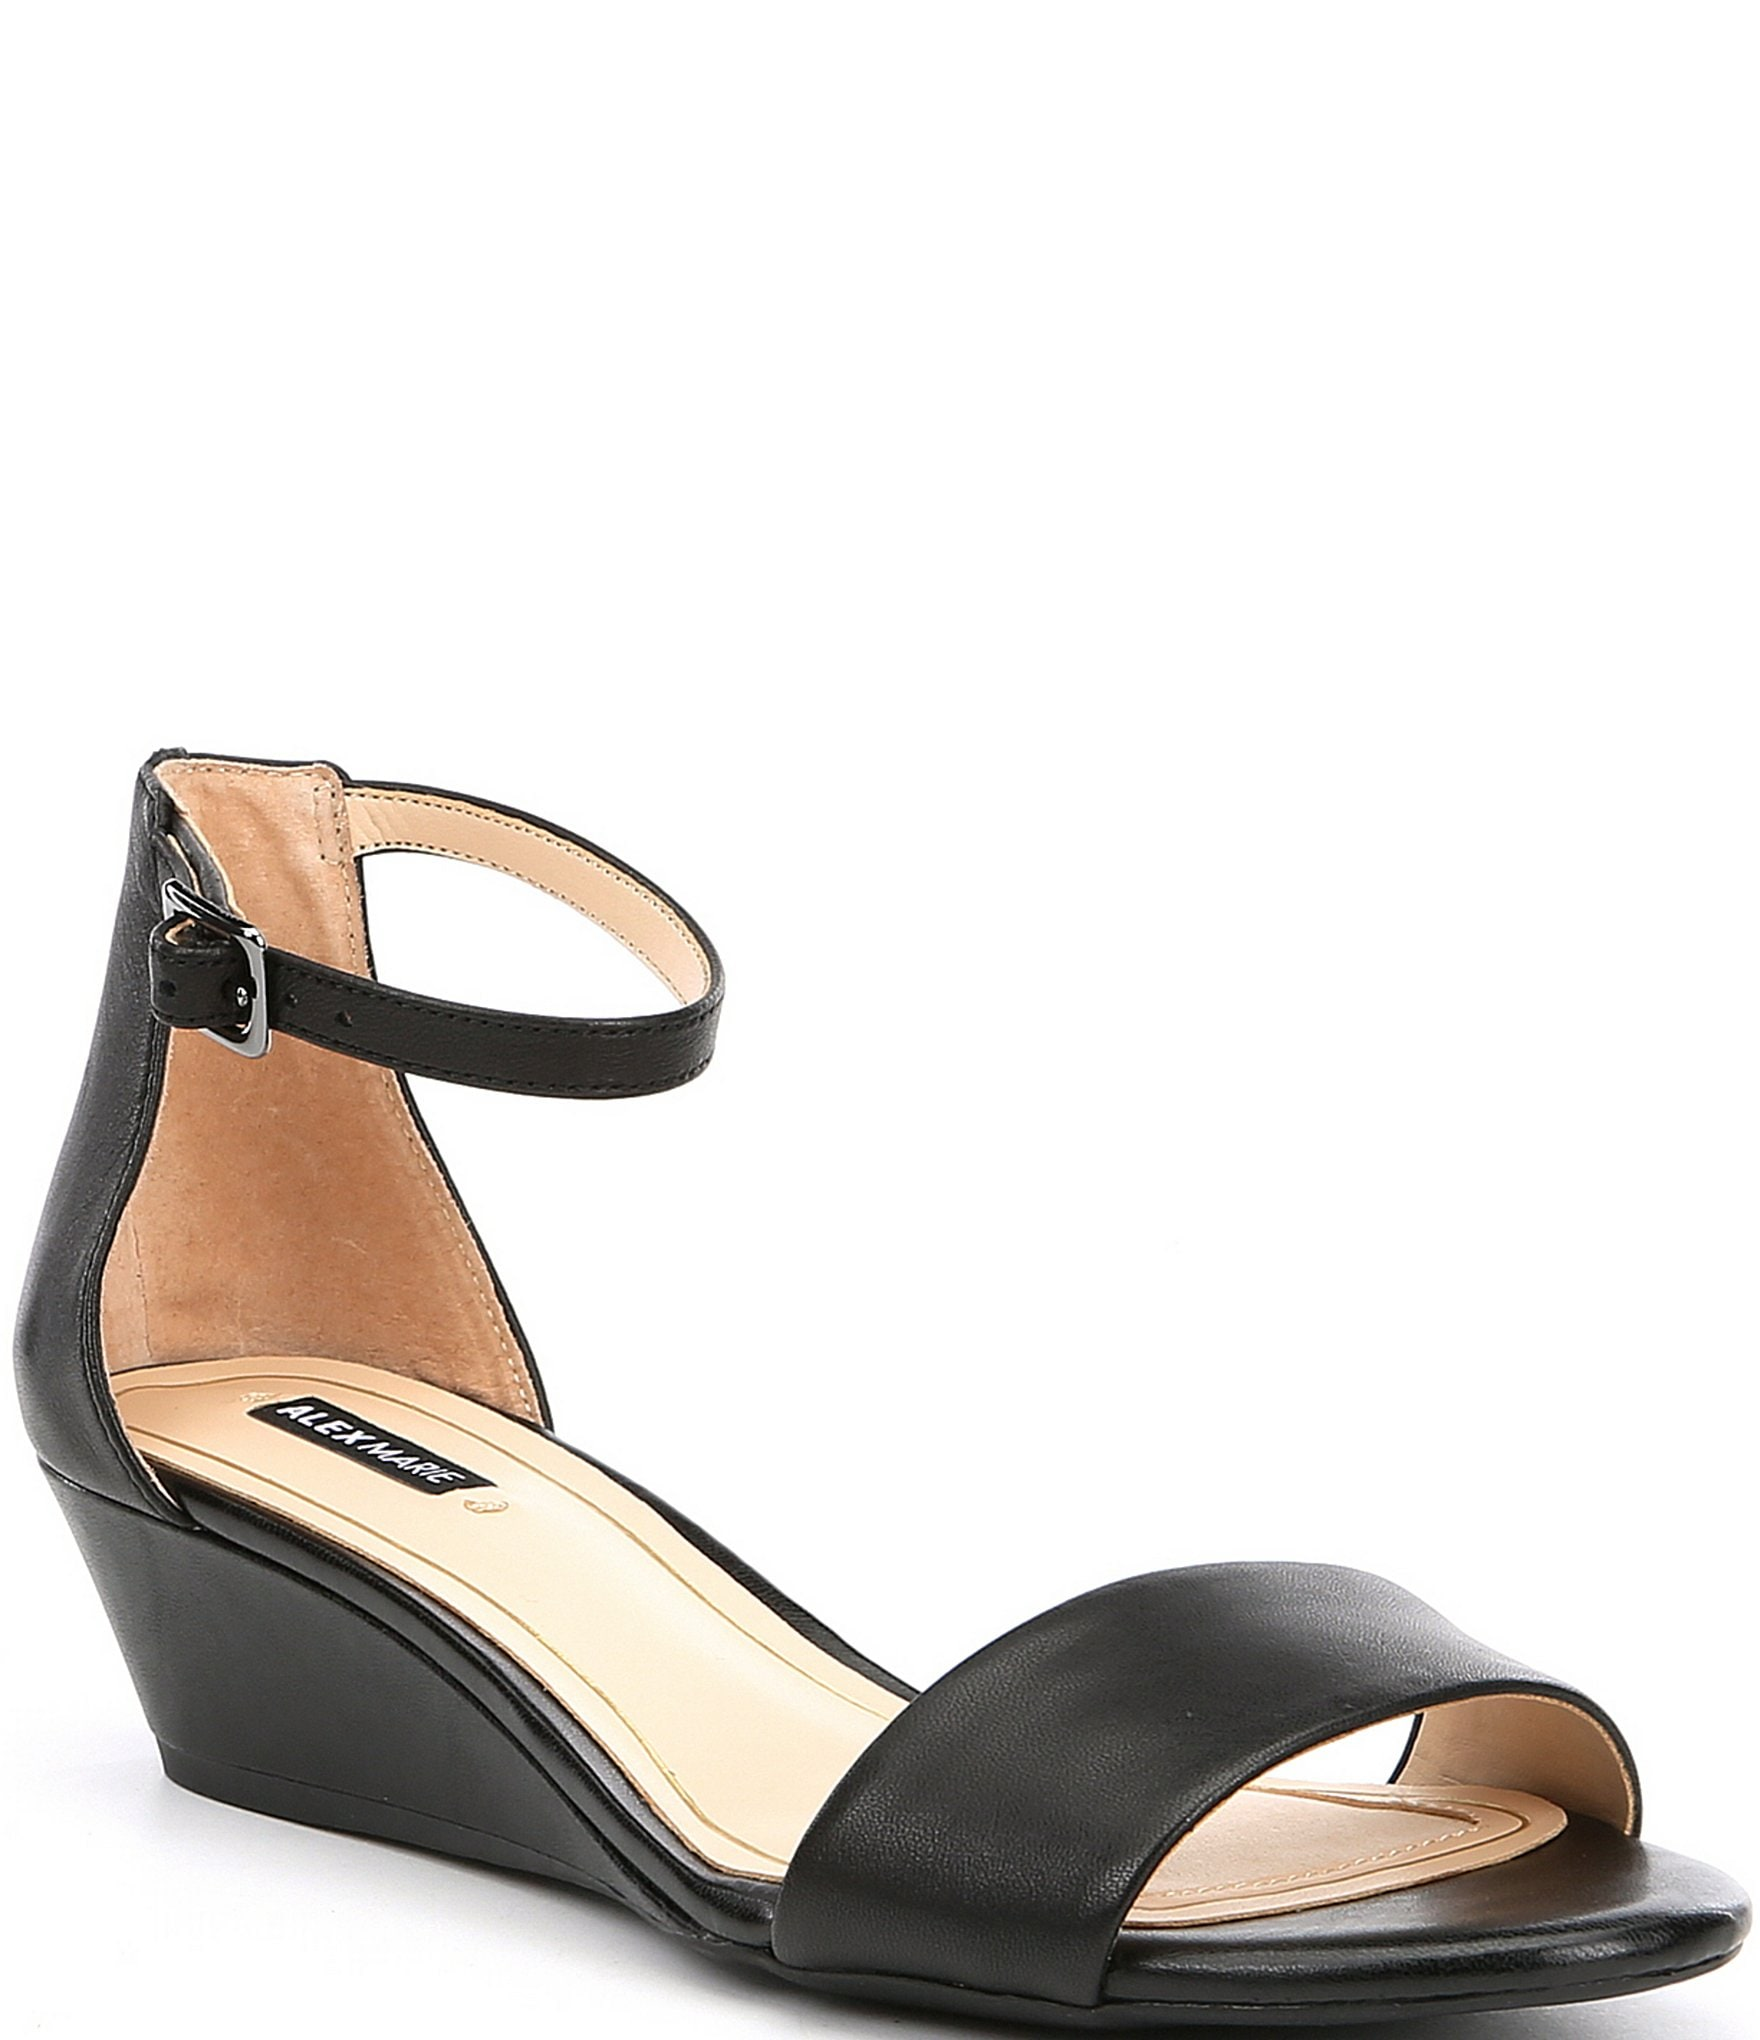 Strap Marie Ankle Sandals Leather Alex Mairitwo Wedge YfI6yvgmb7